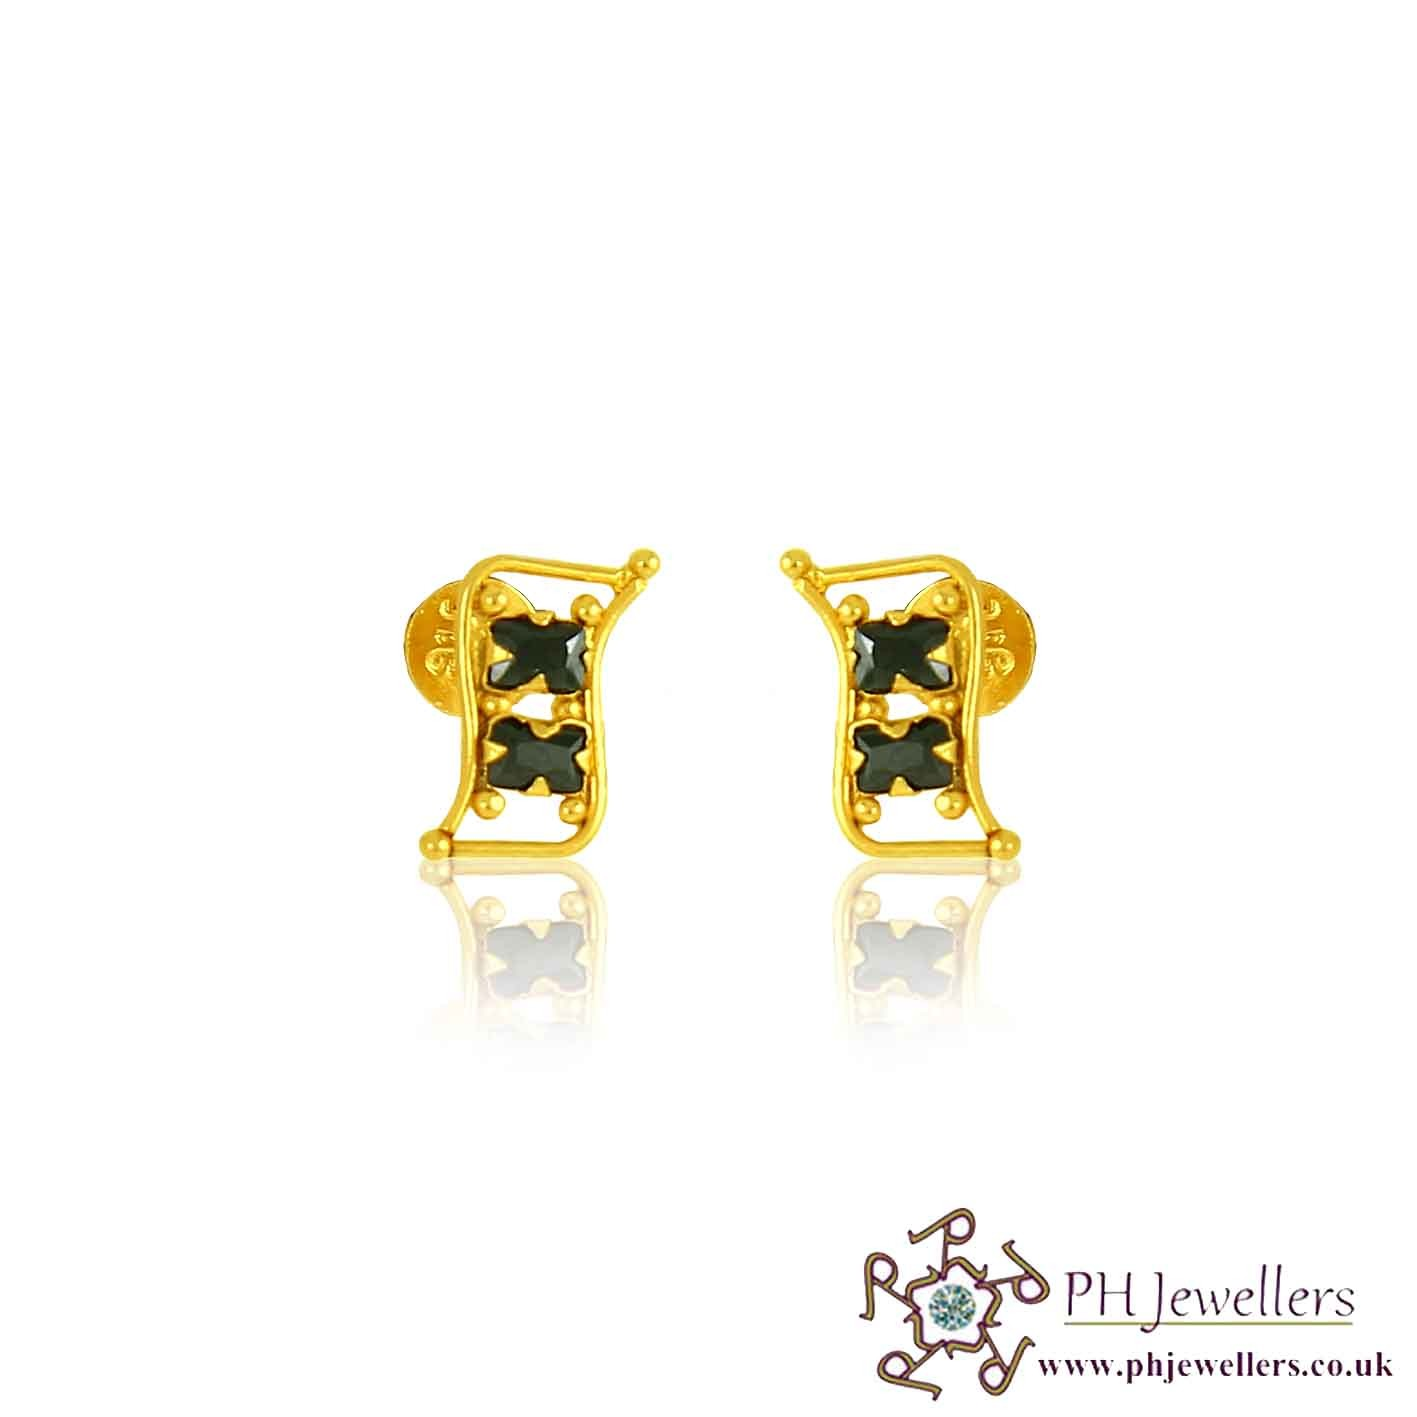 22CT 916 Yellow Gold Black Earring CZ SE63